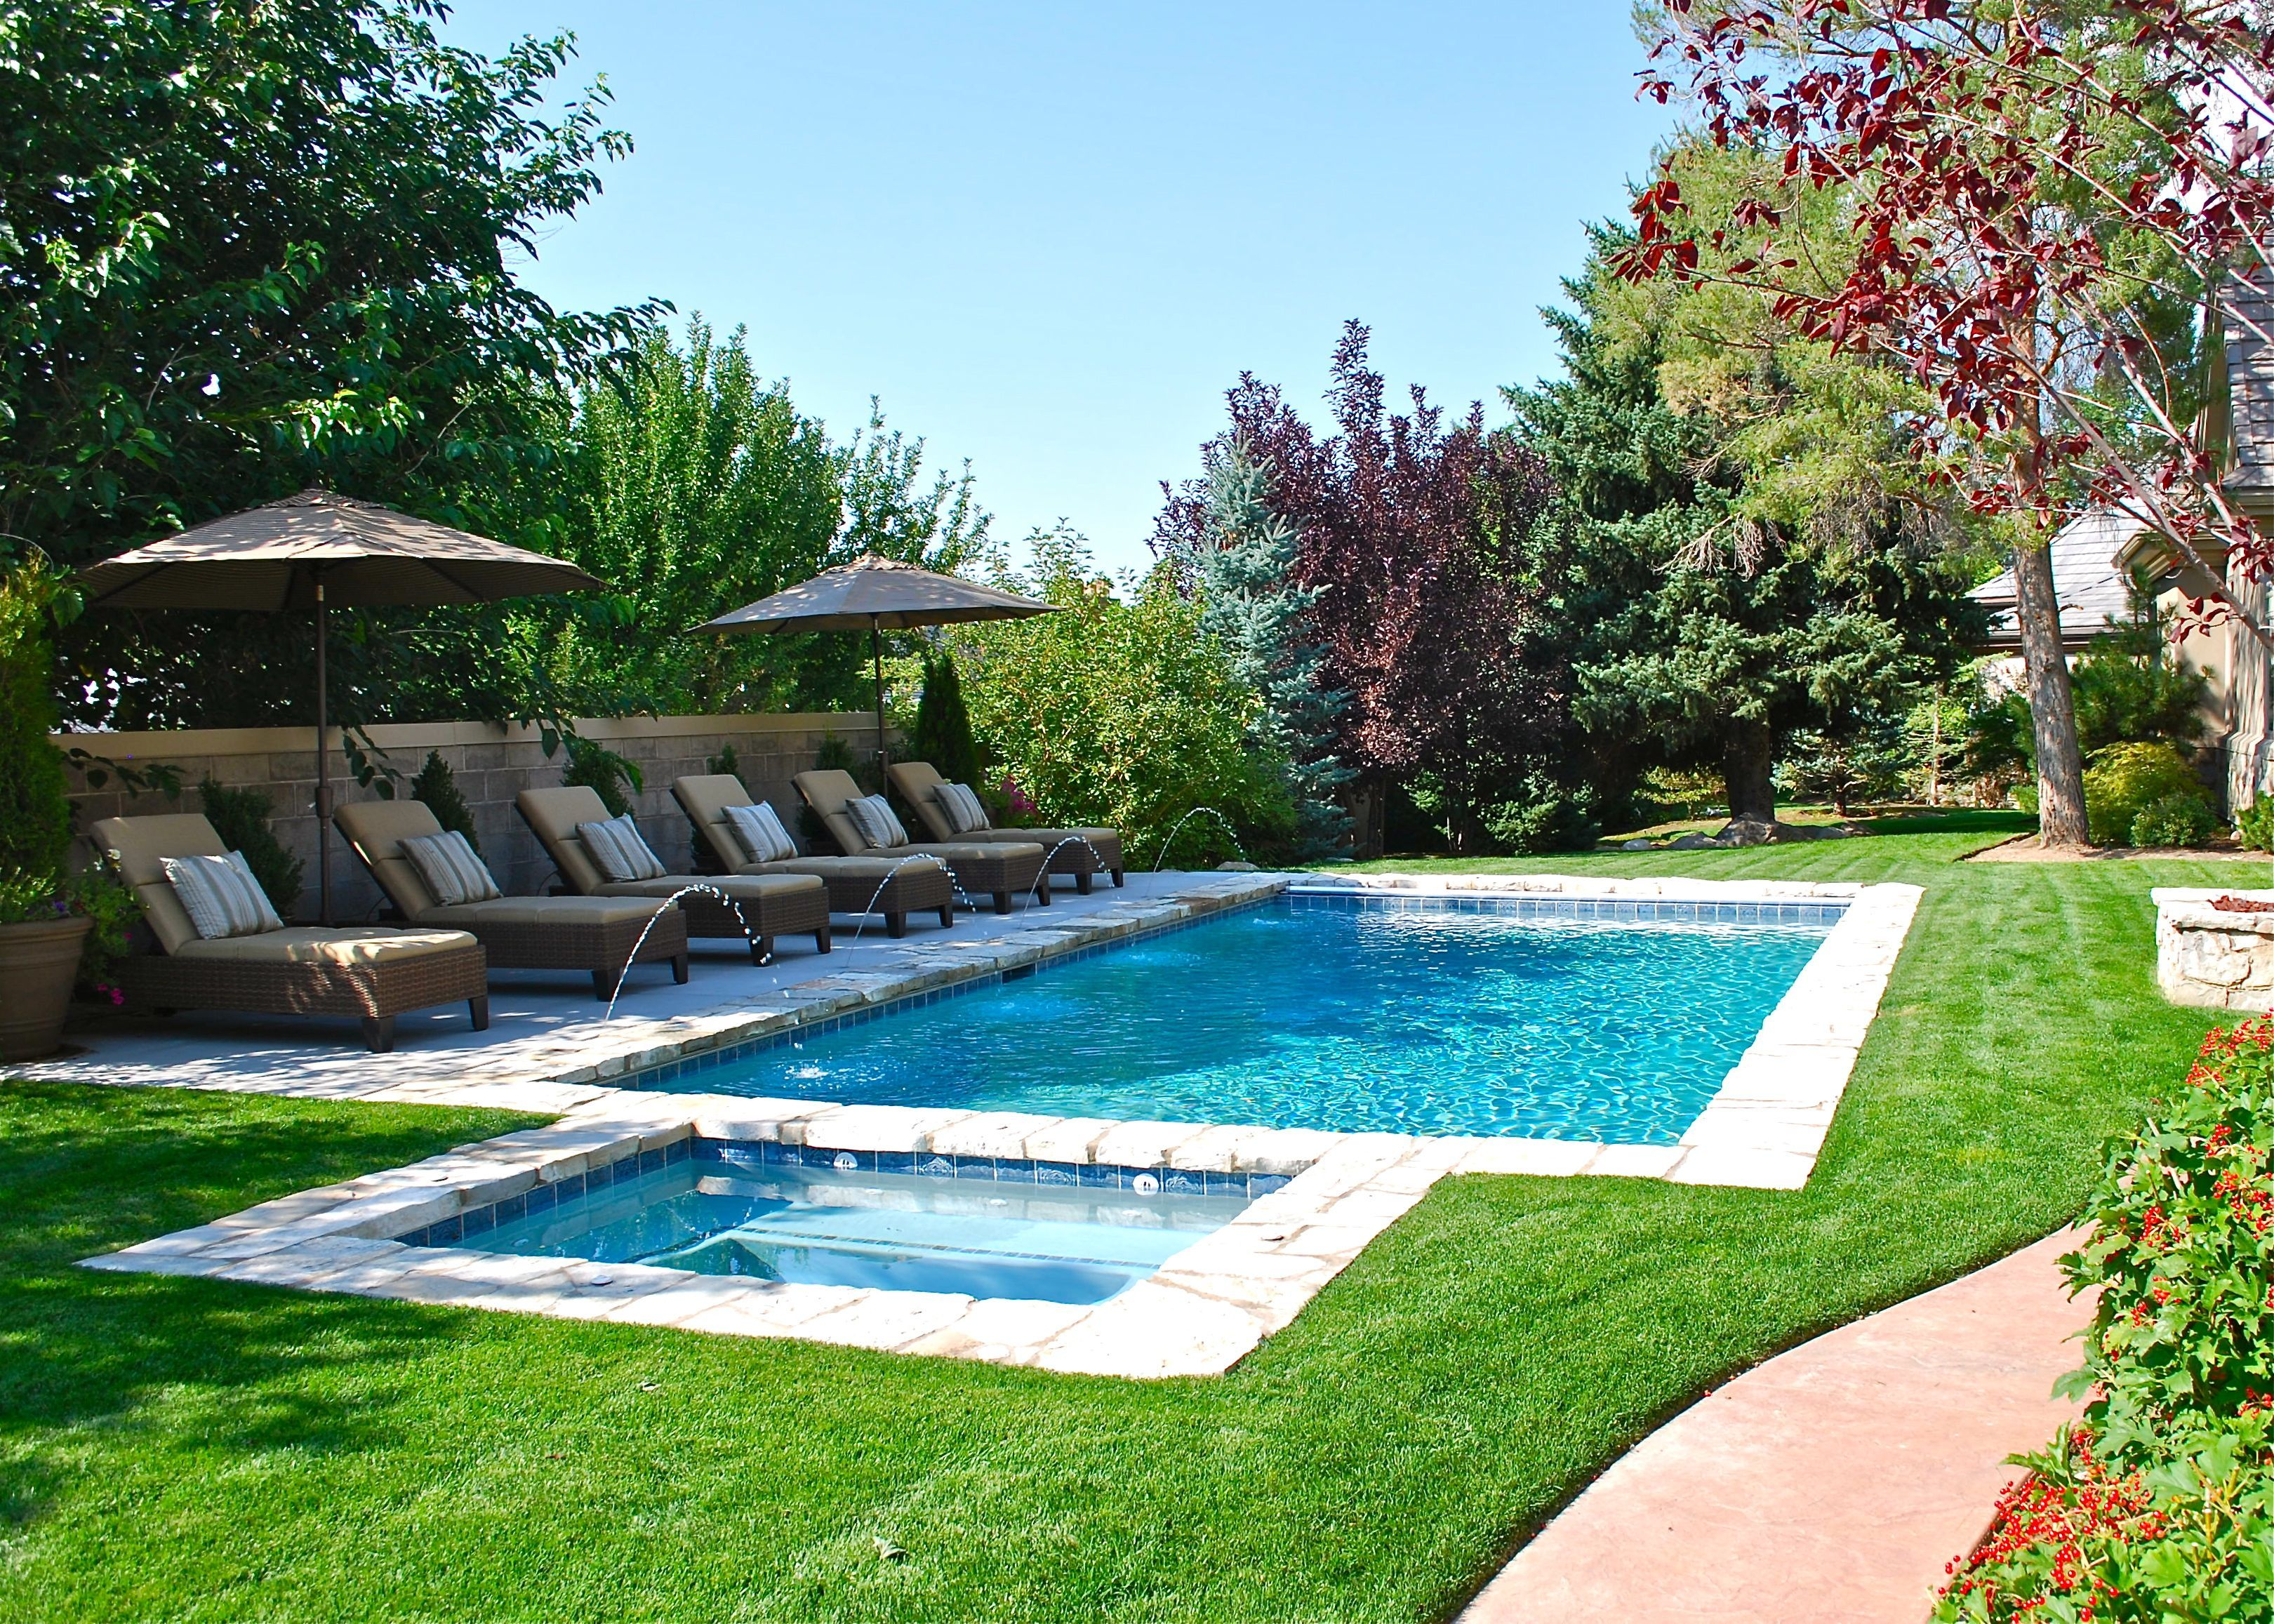 backyard swimming pool with minimal decking. deckjets and